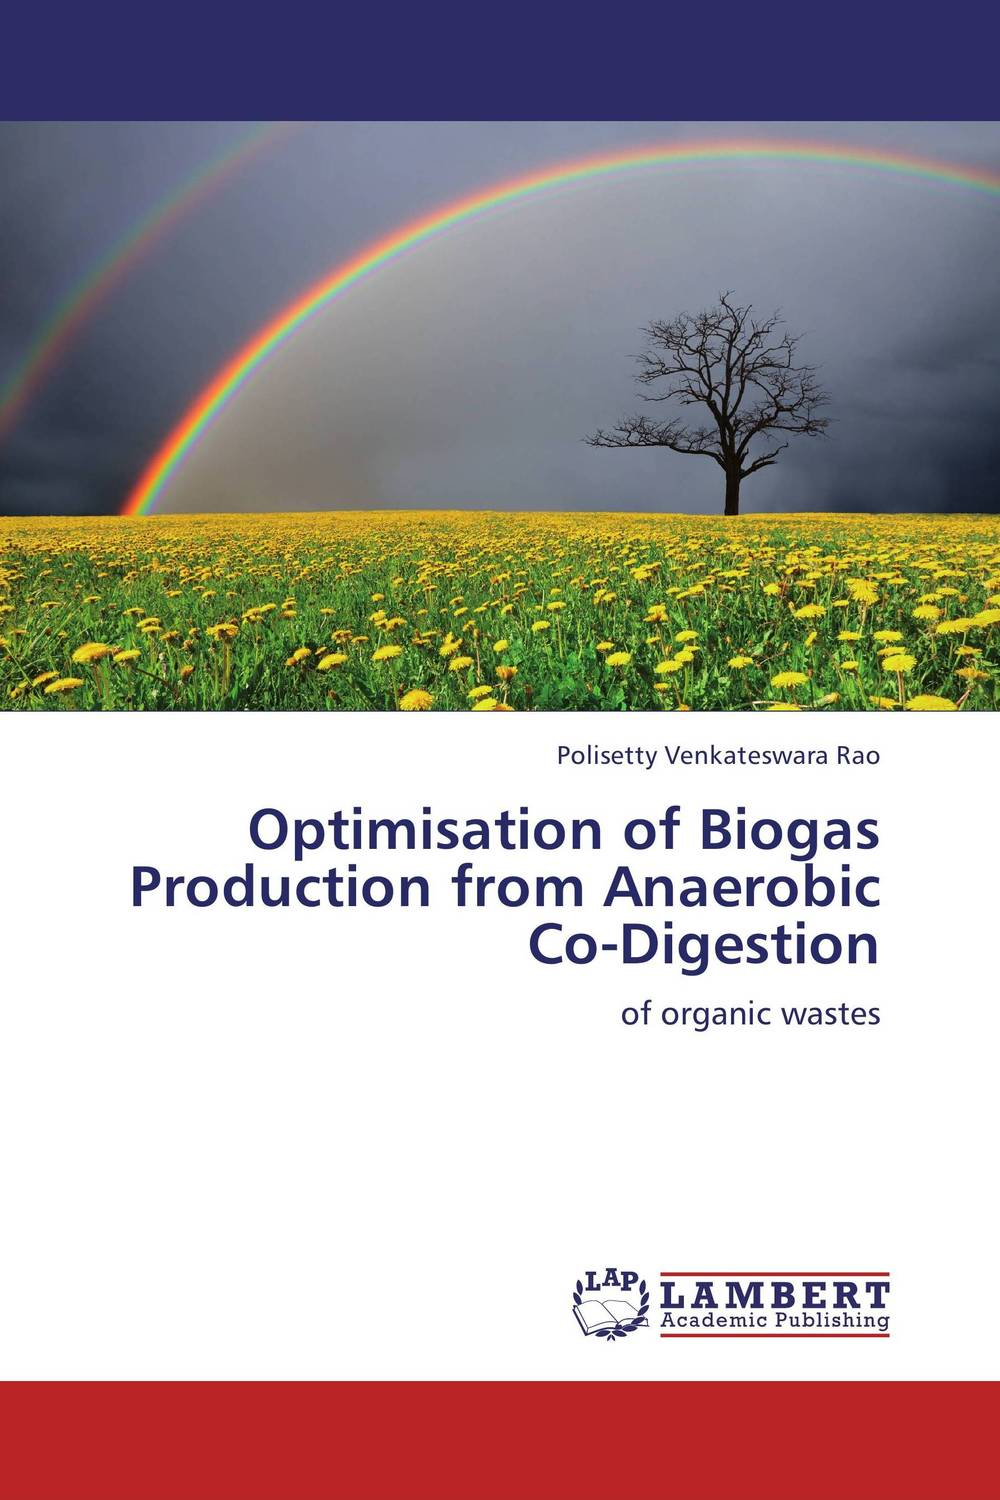 Zakazat.ru: Optimisation of Biogas Production from Anaerobic Co-Digestion